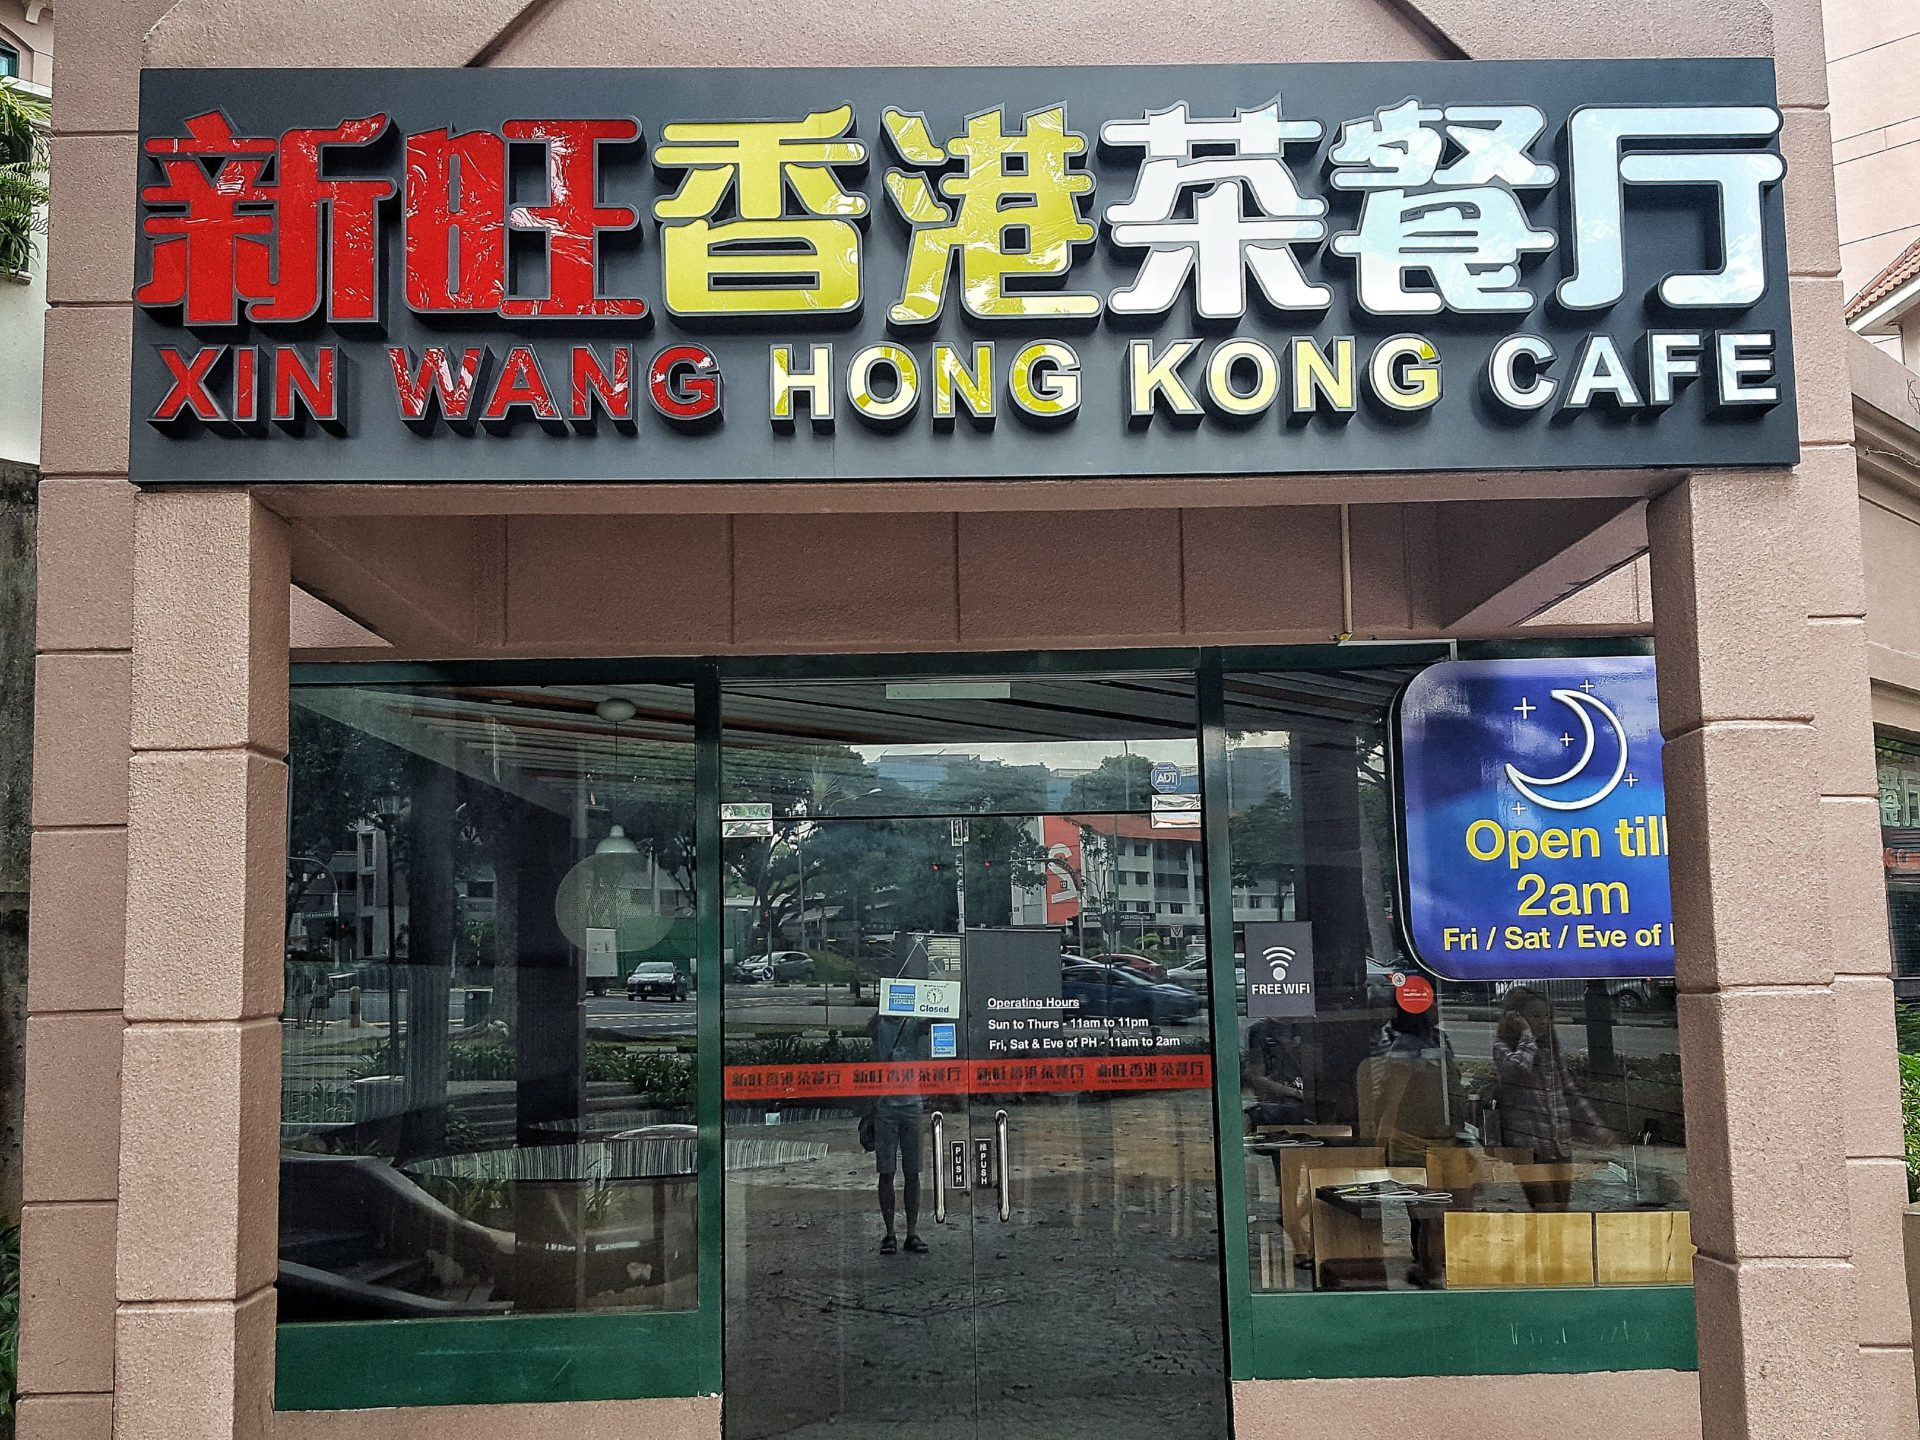 Xin Wang Hong Kong Cafe - Anchorpoint